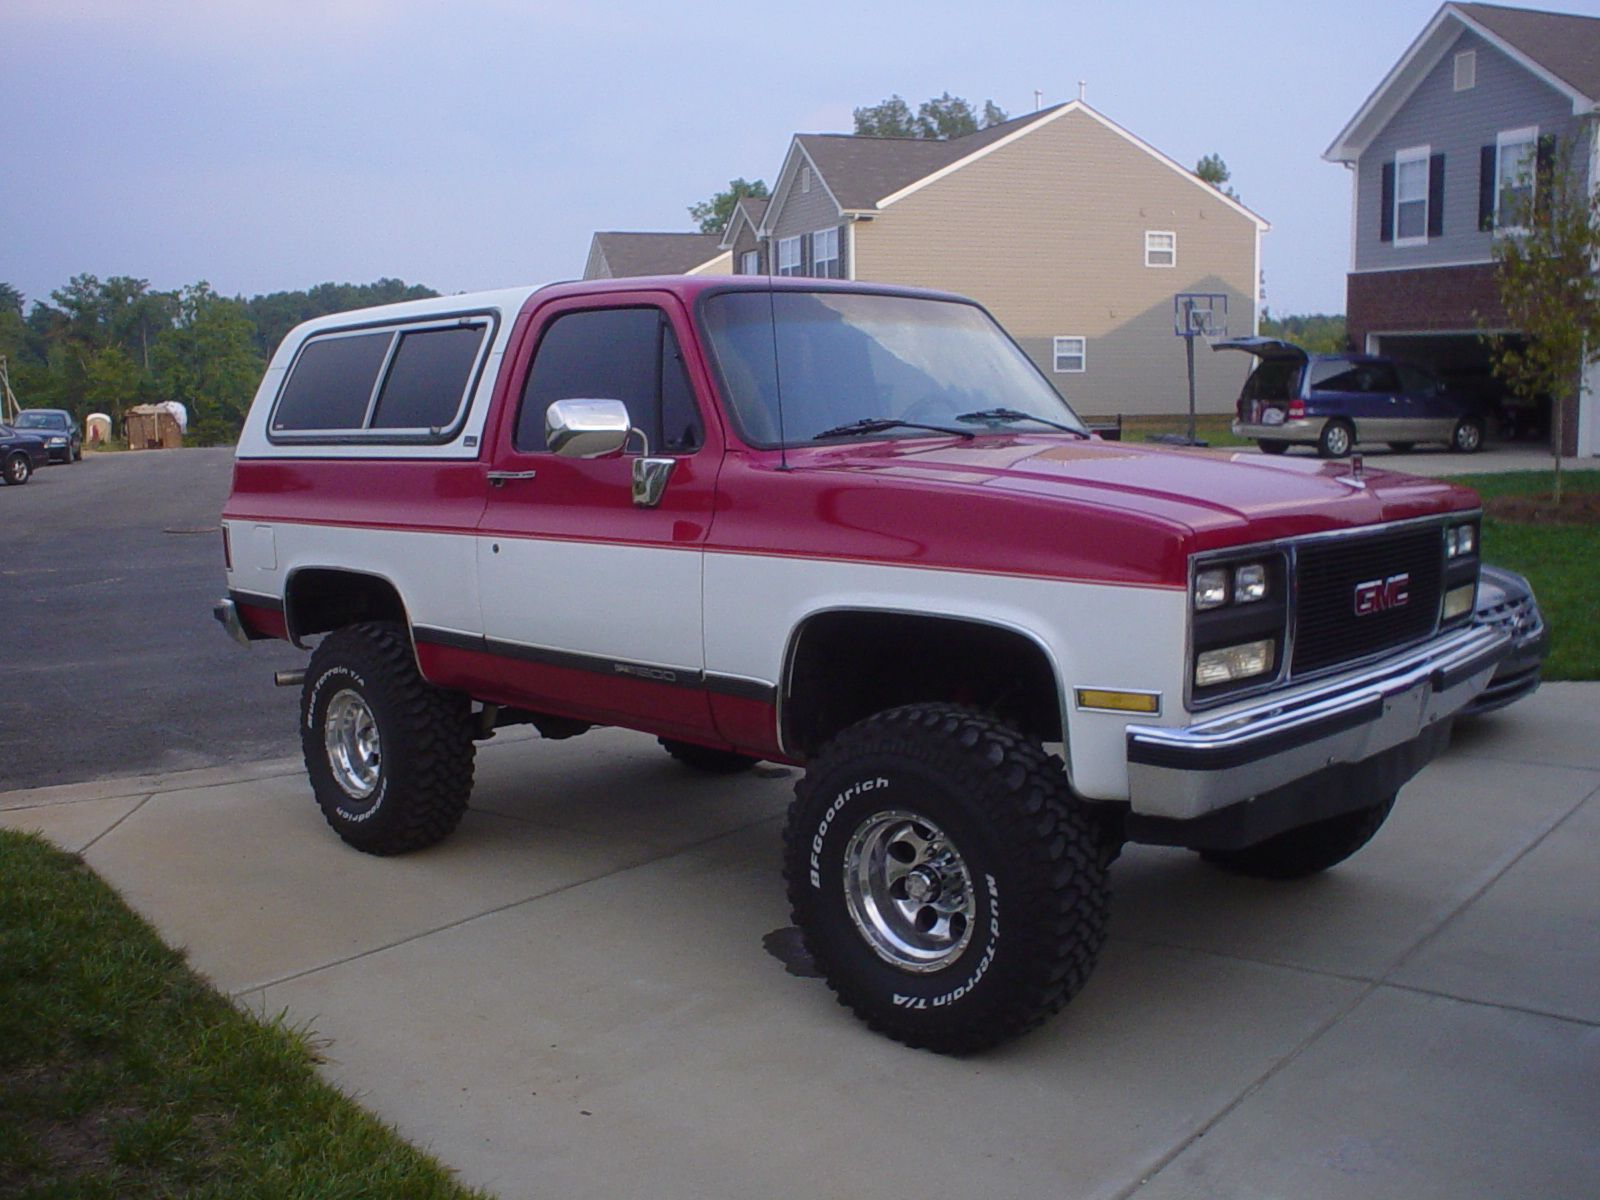 photos of 1987 gmc jimmy yahoo image search results [ 1600 x 1200 Pixel ]